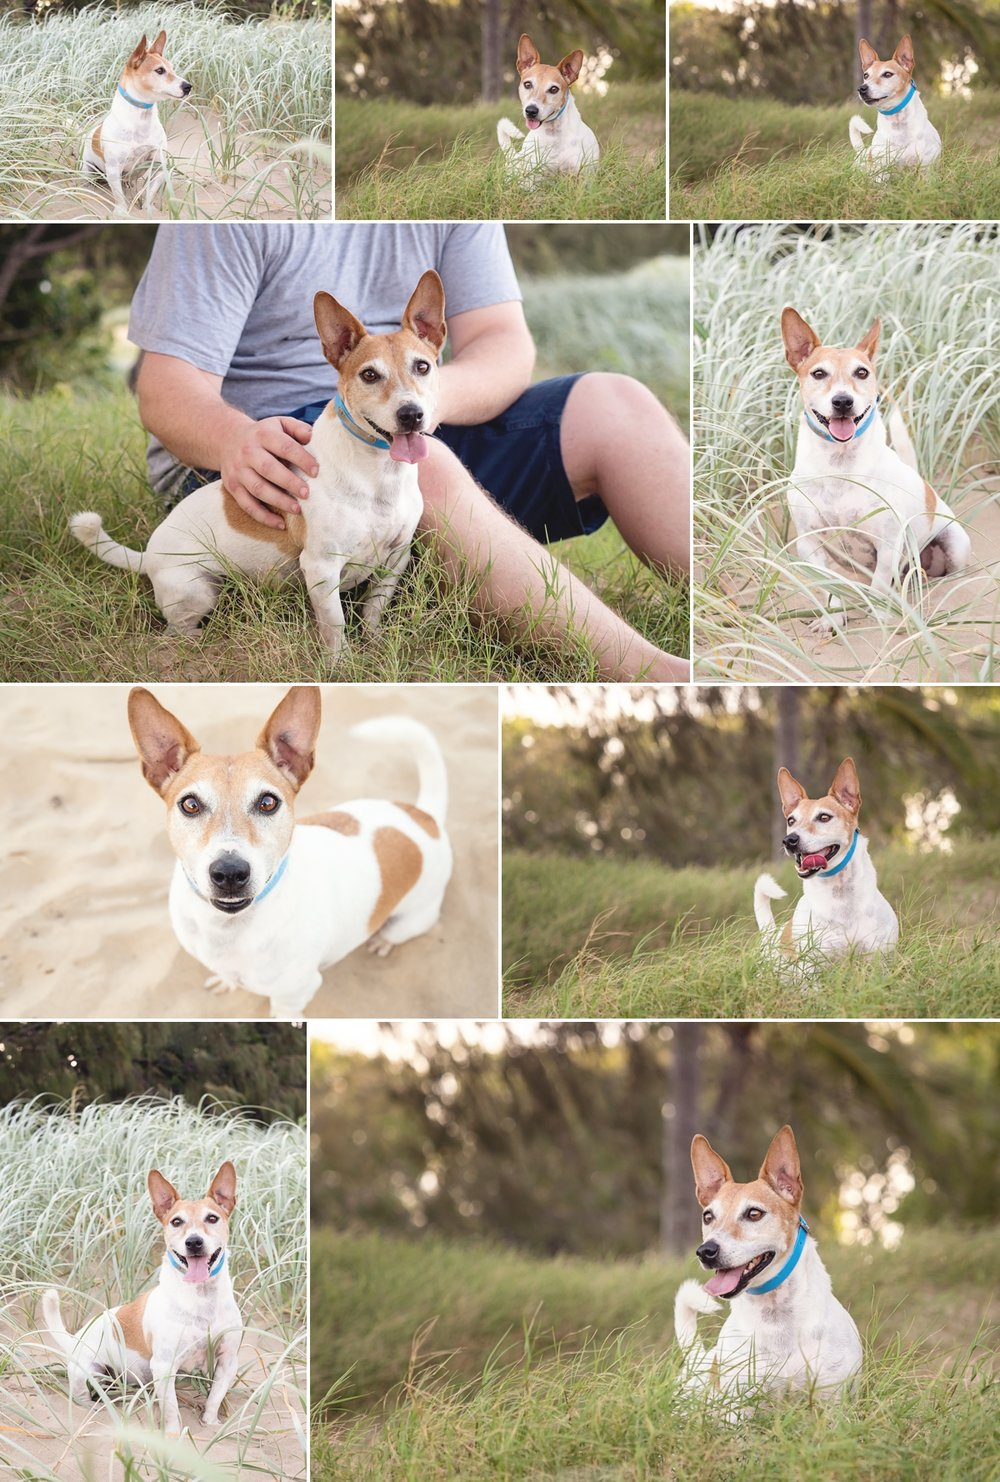 Buddy-the-Jack-Russell-at-Illawong-Beach-Mackay-Gallery-1.jpg